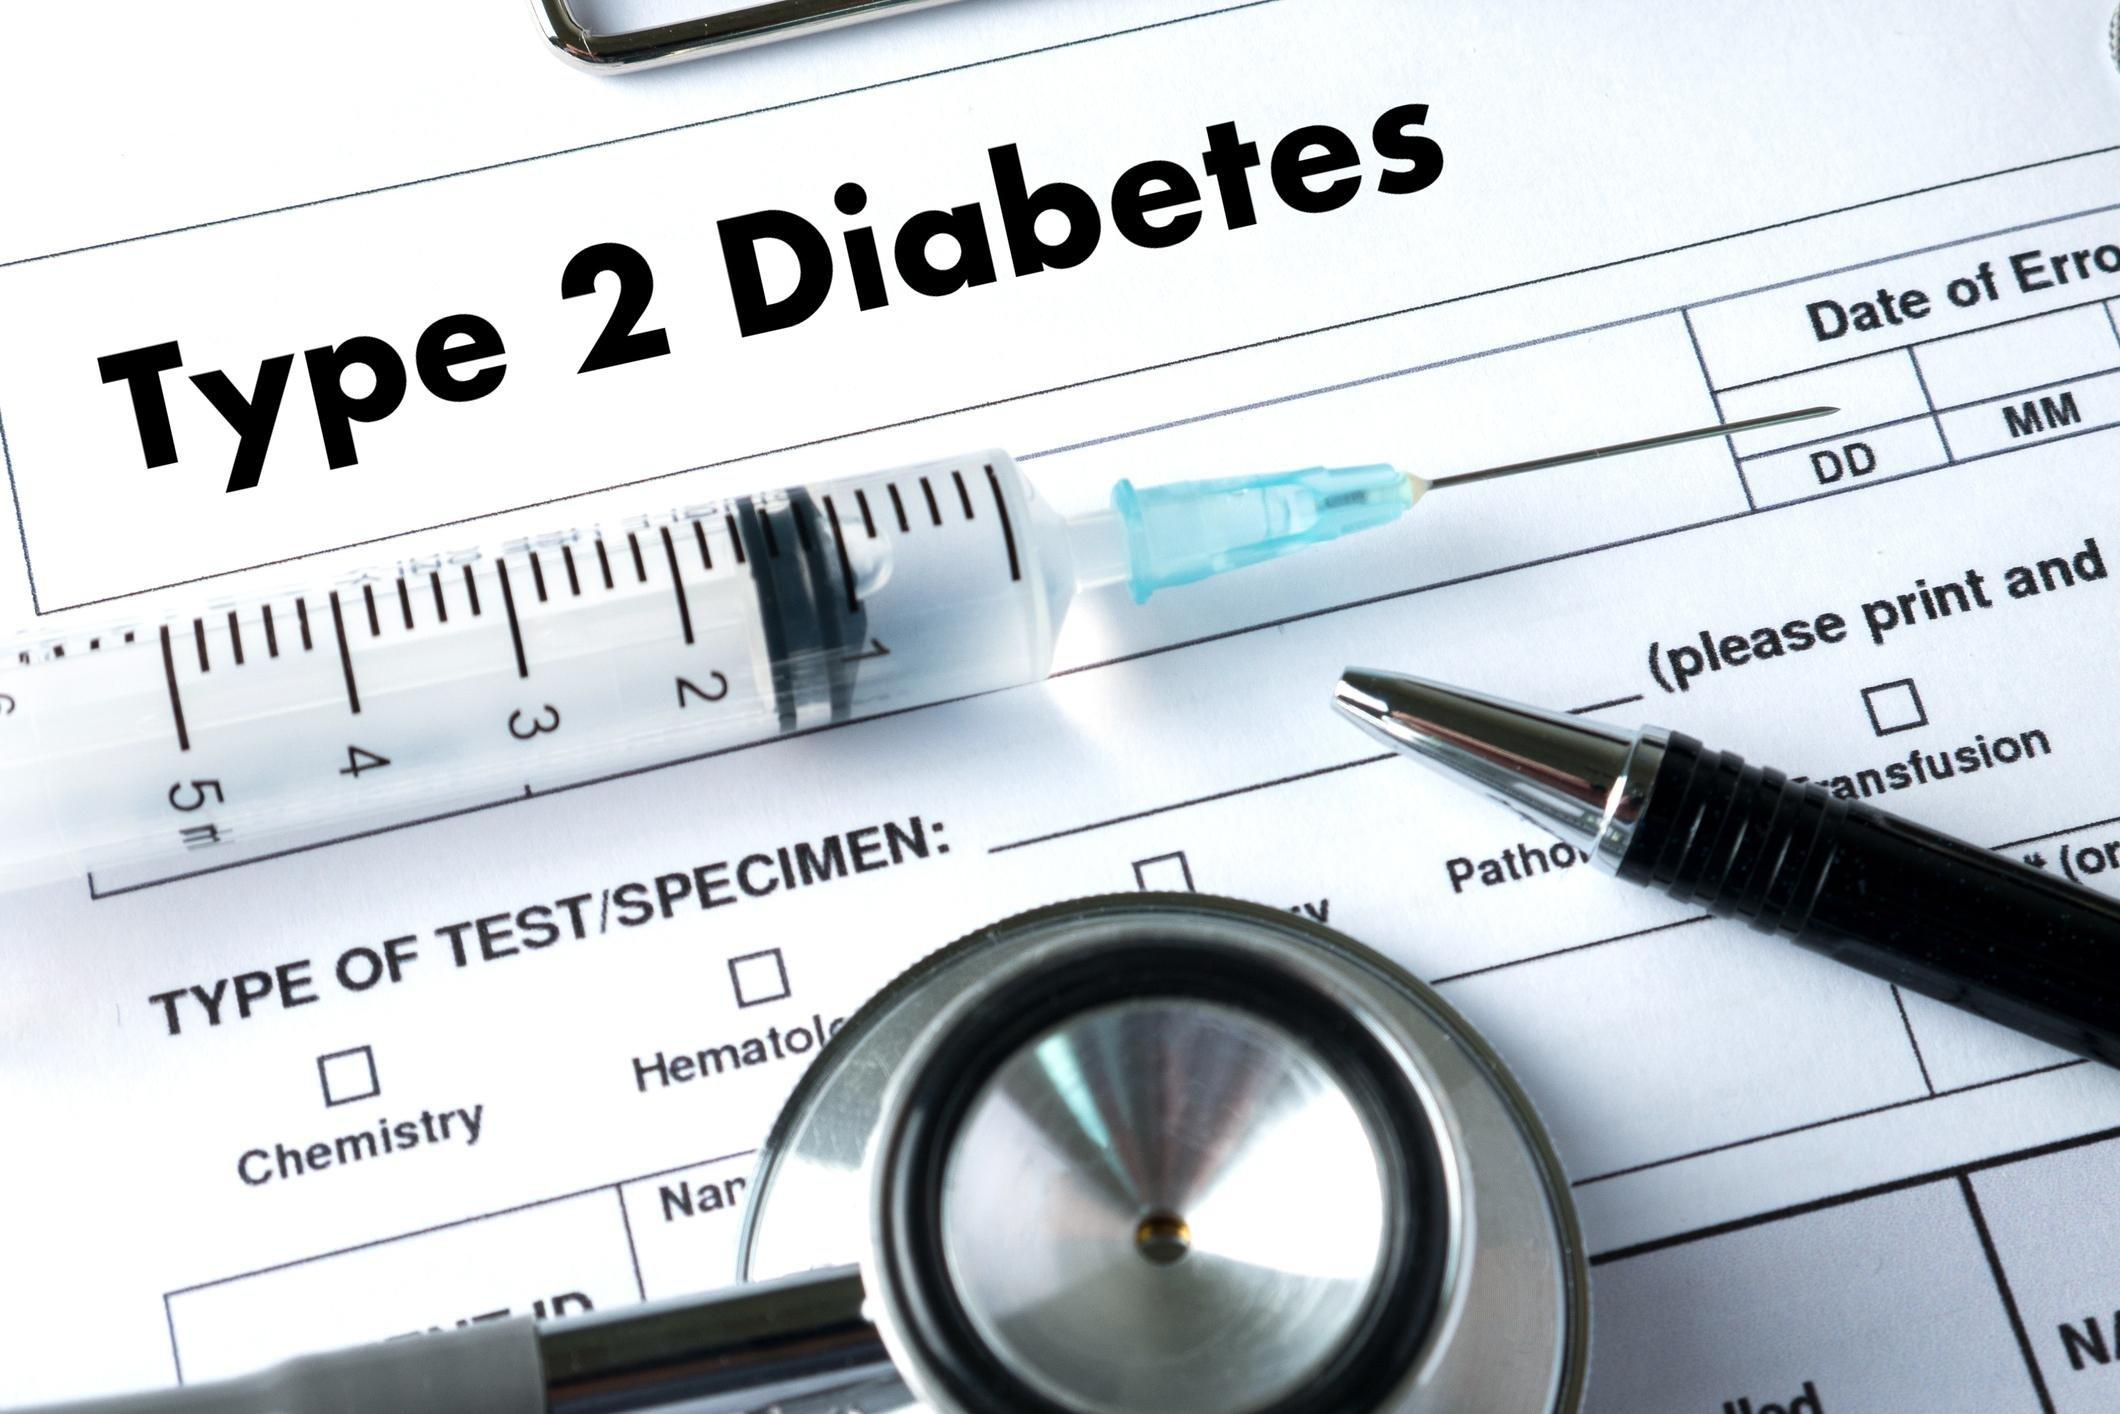 Rethinking A1c Goals For Type 2 Diabetes